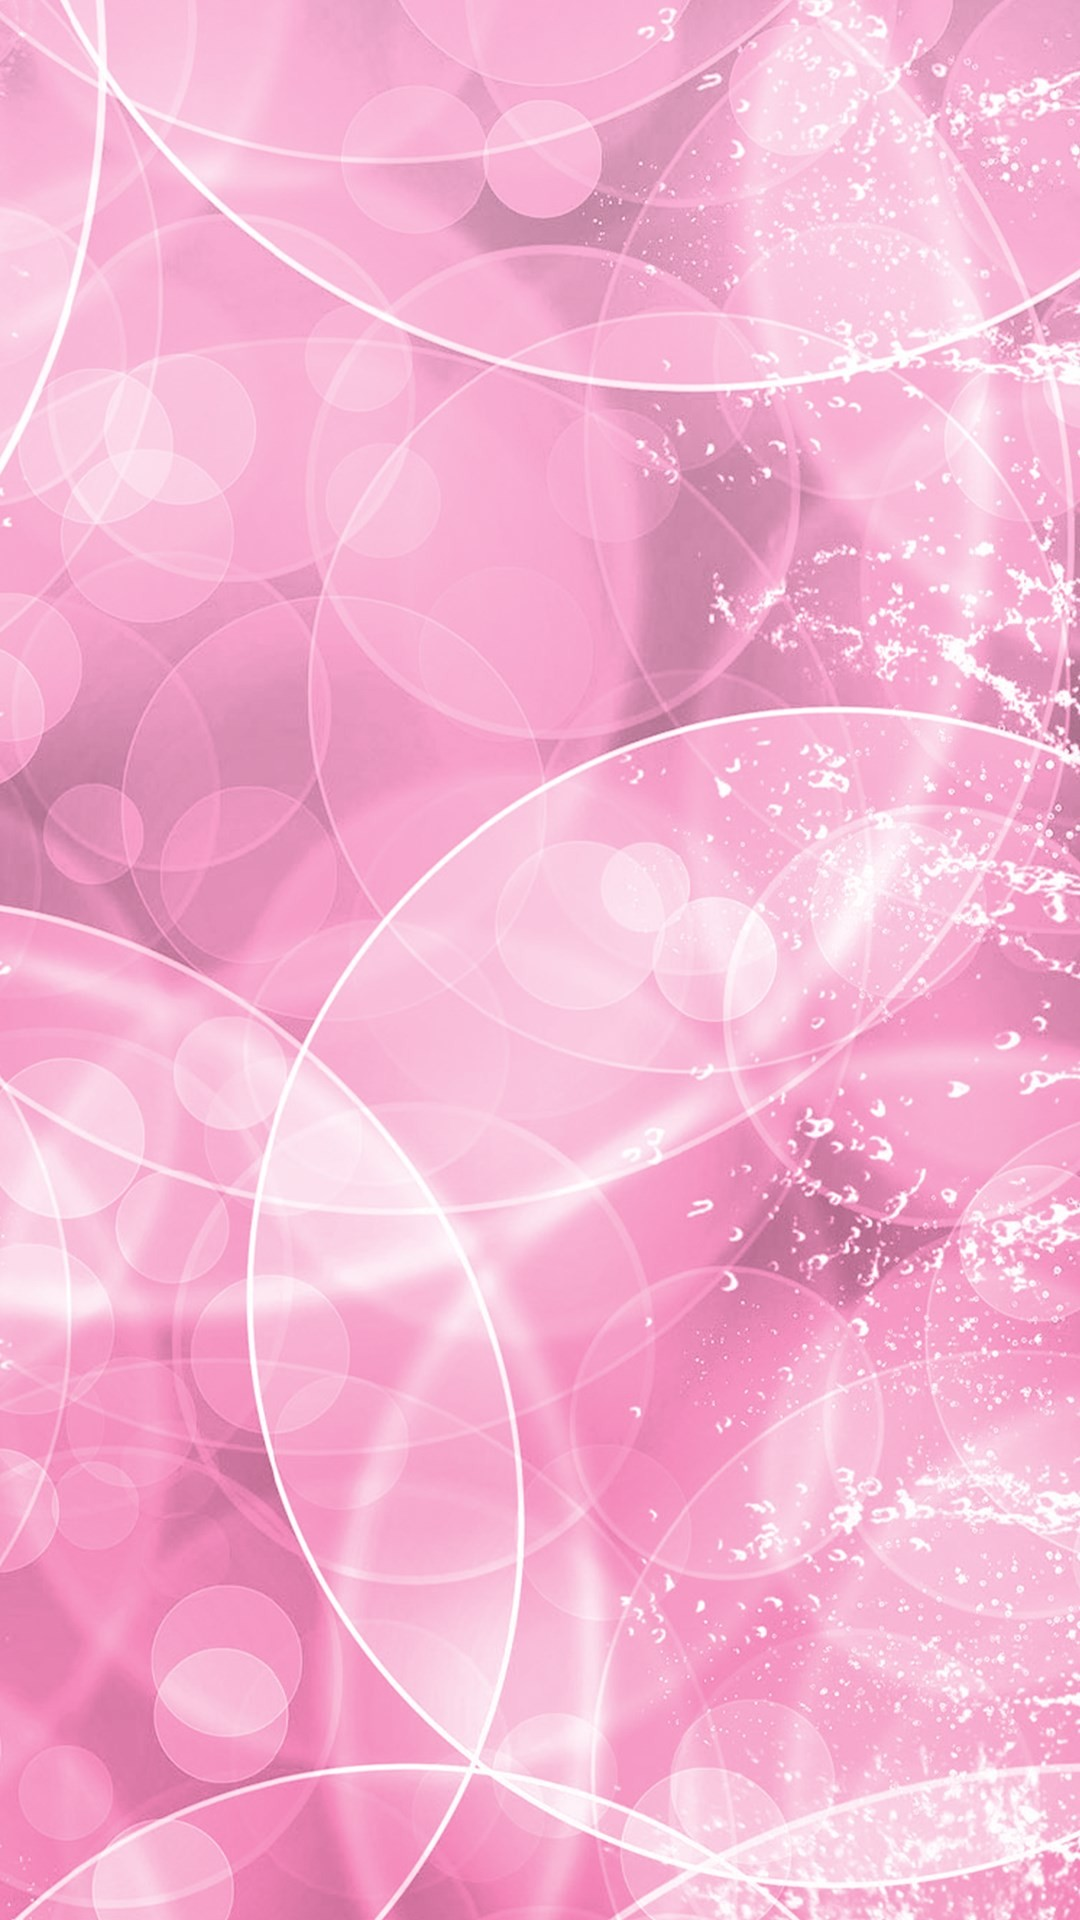 Girly Iphone Wallpaper 82 Images